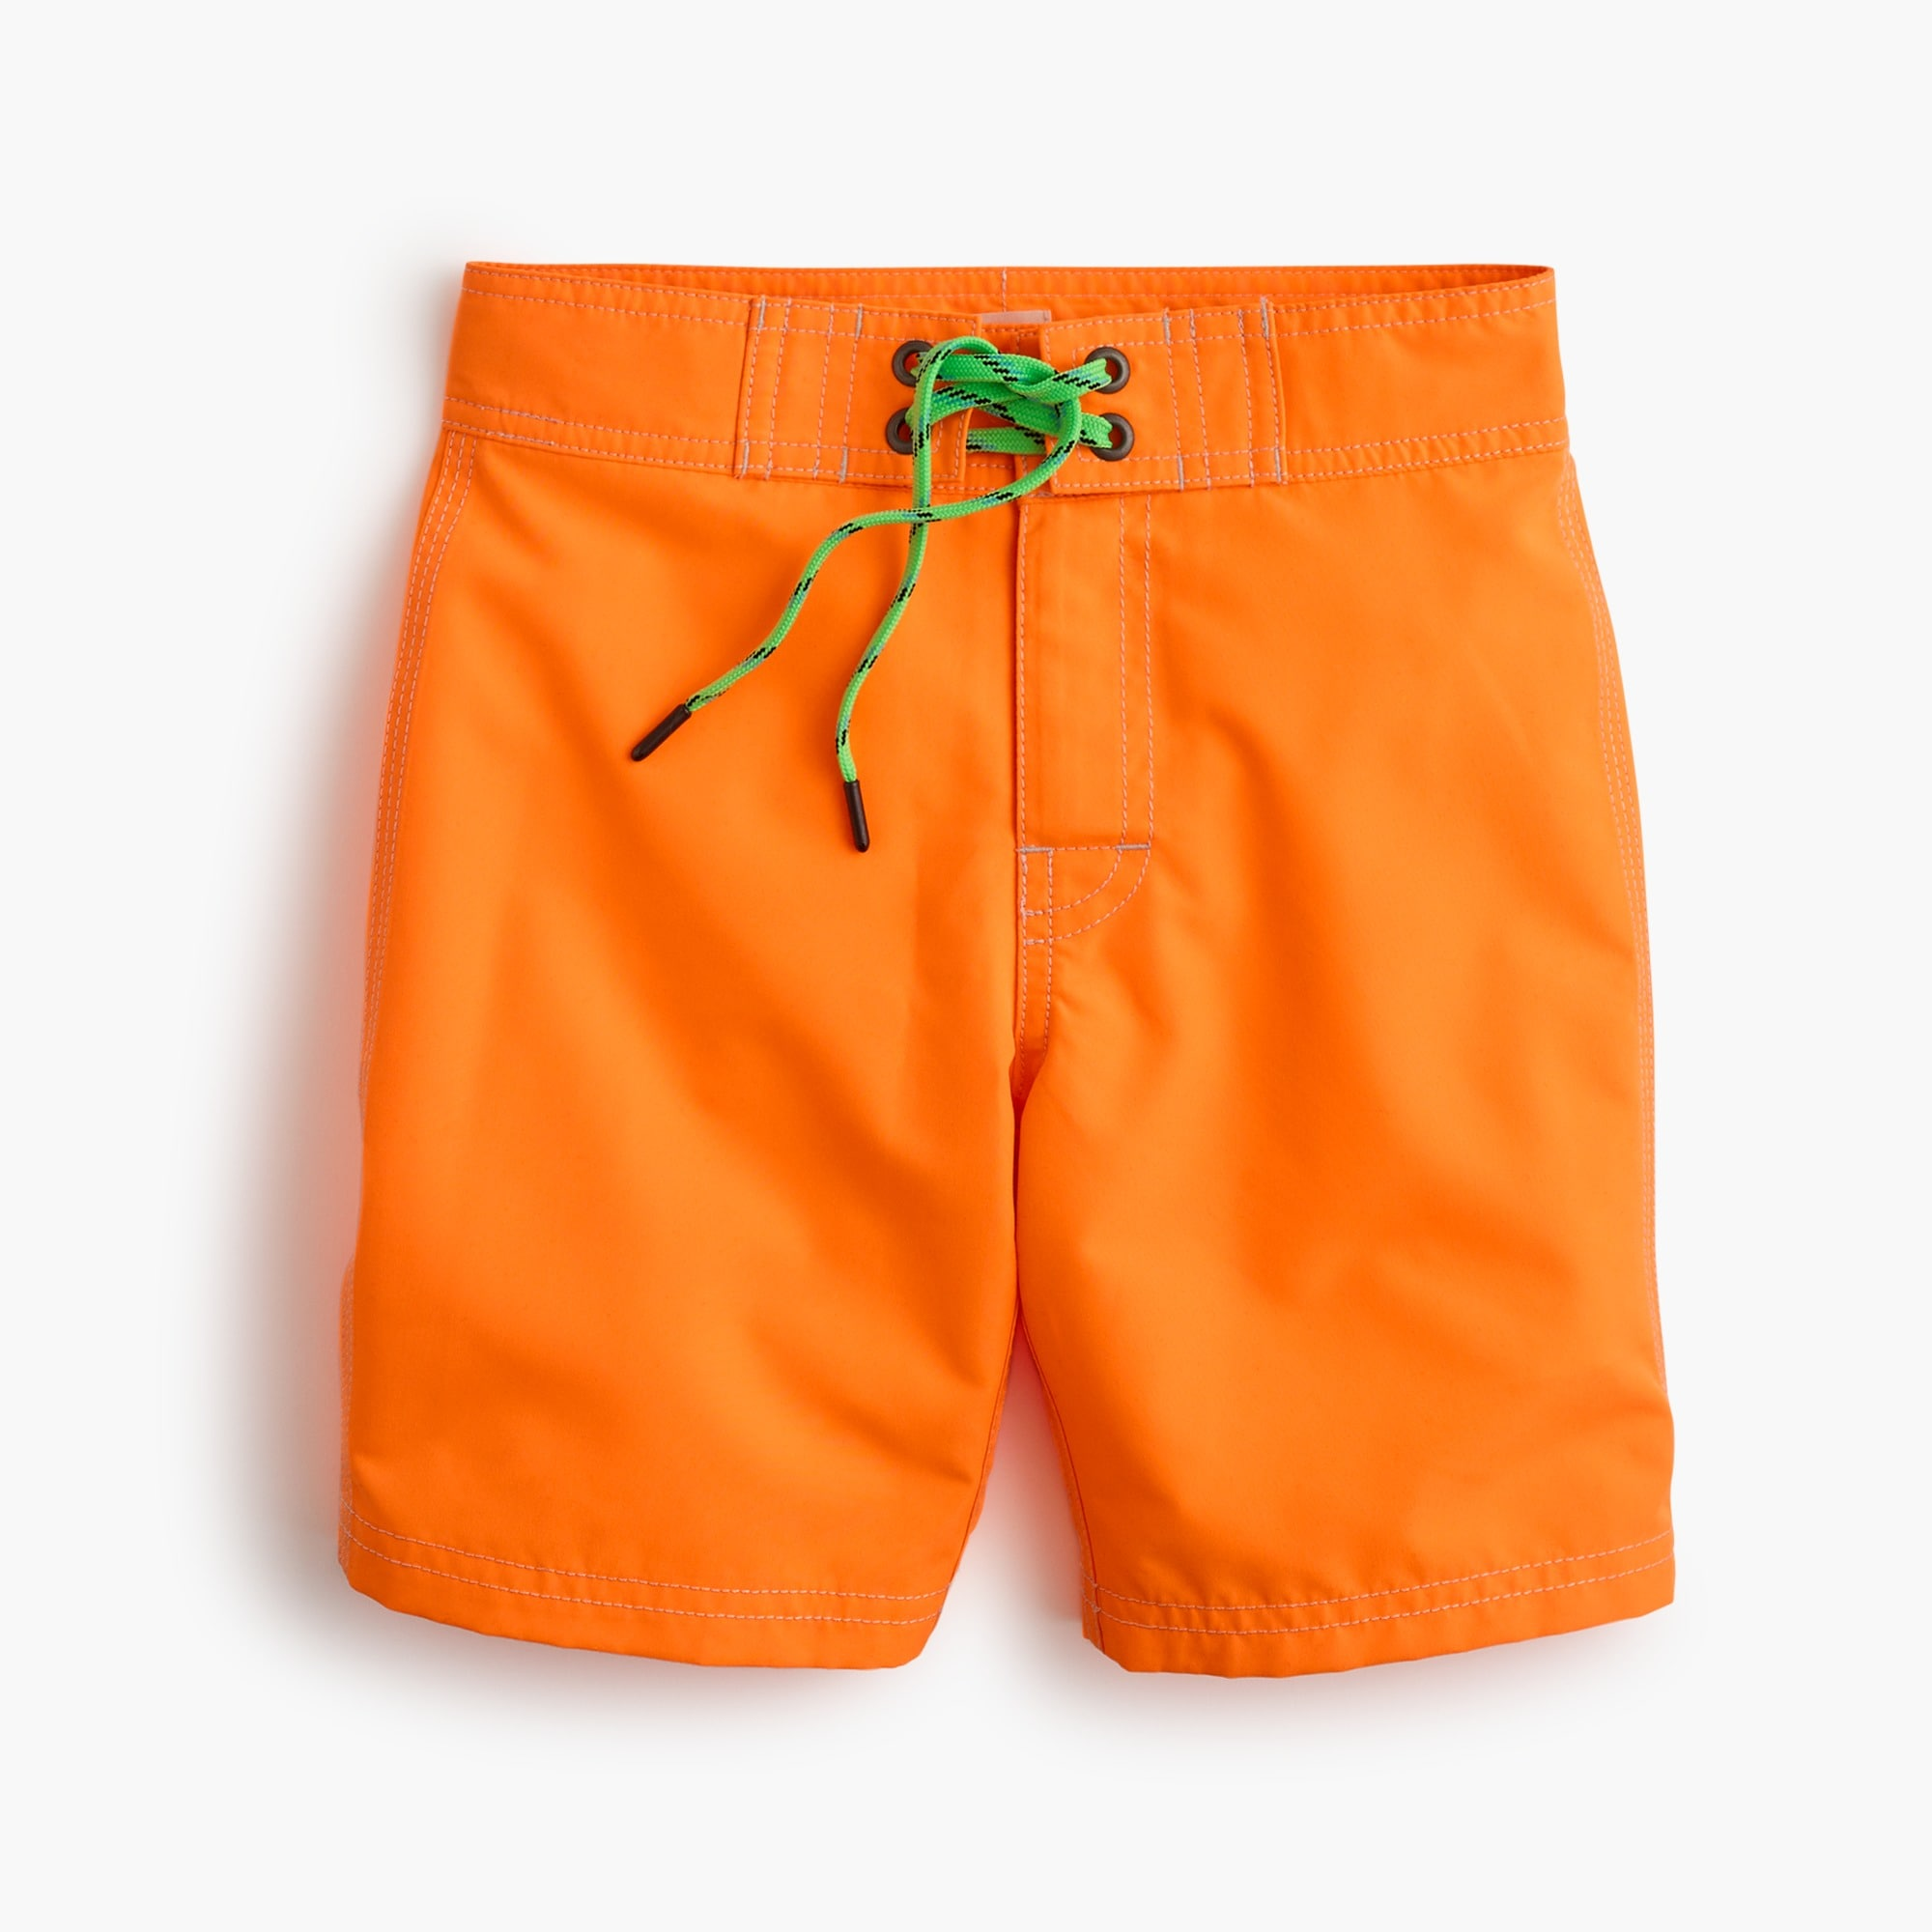 Image 1 for Boys' board short in bright orange